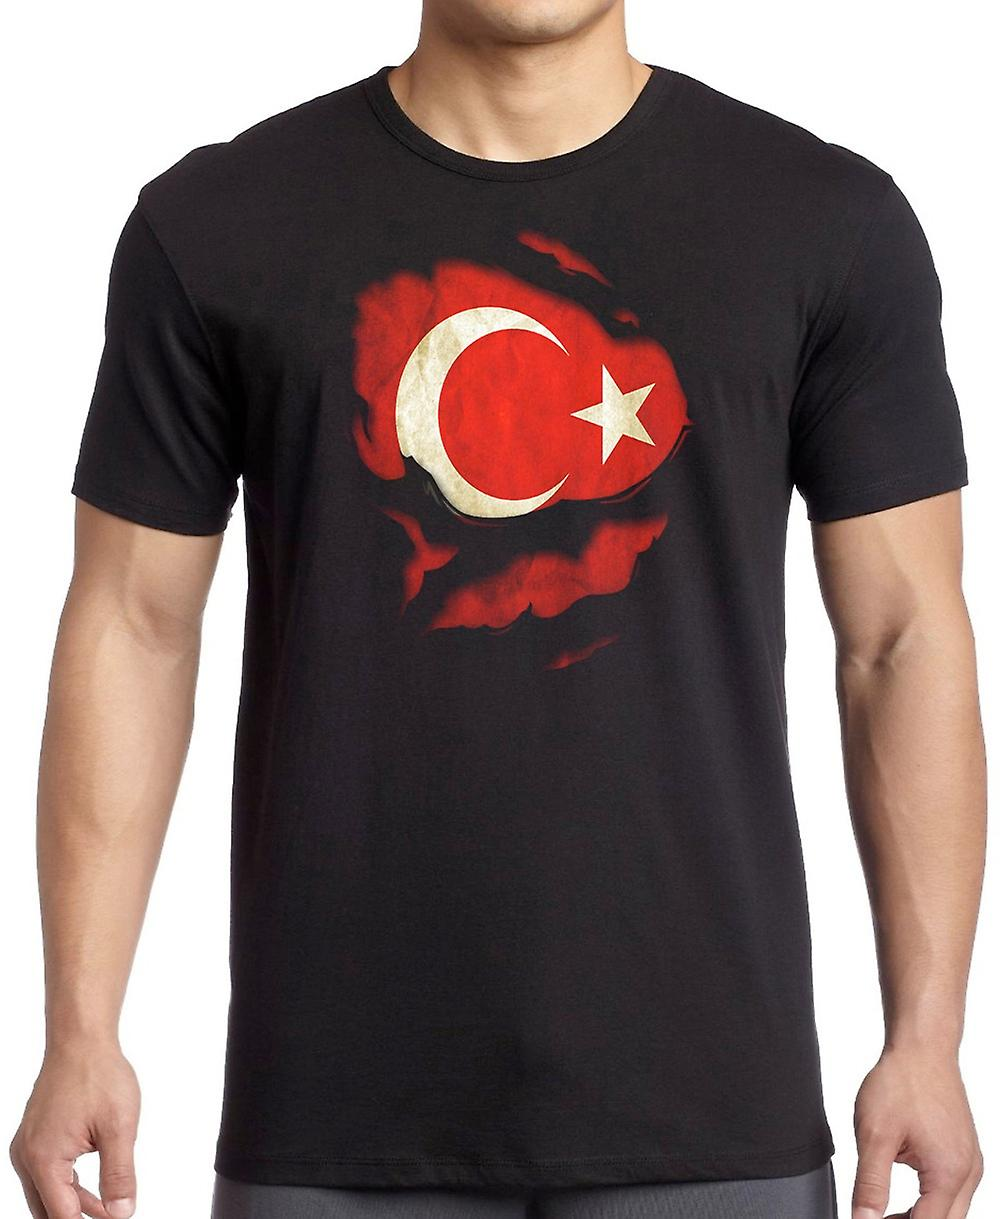 Turkey Ripped Effect Under Shirt T Shirt